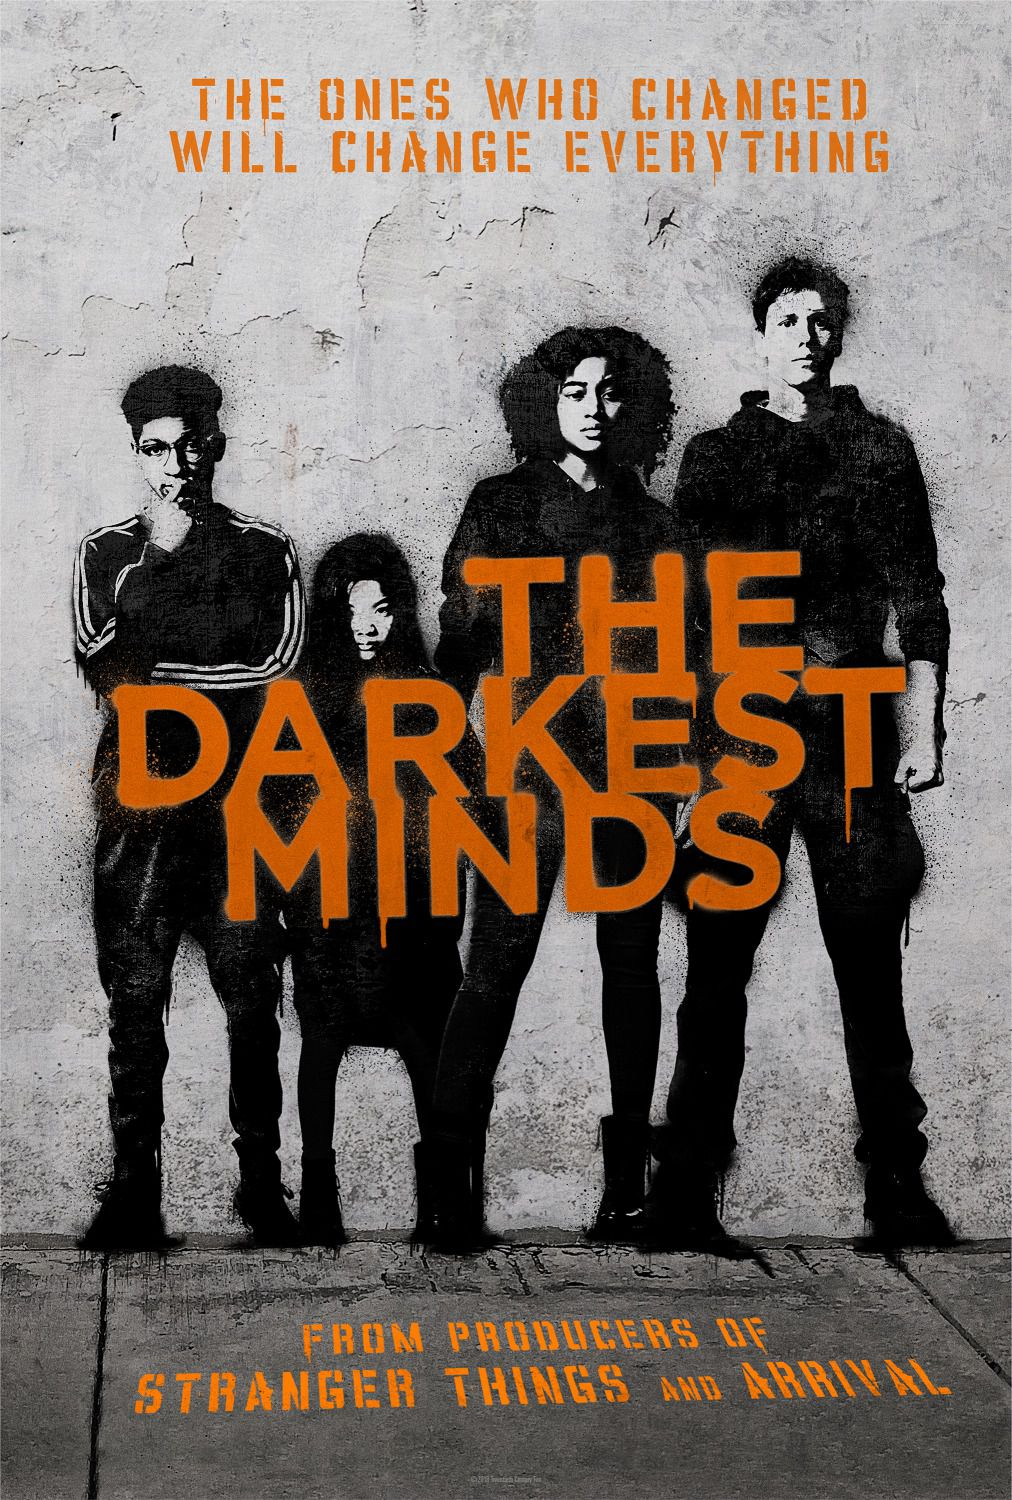 The Darkest Minds - fantascienza dna mutant film poster 2018